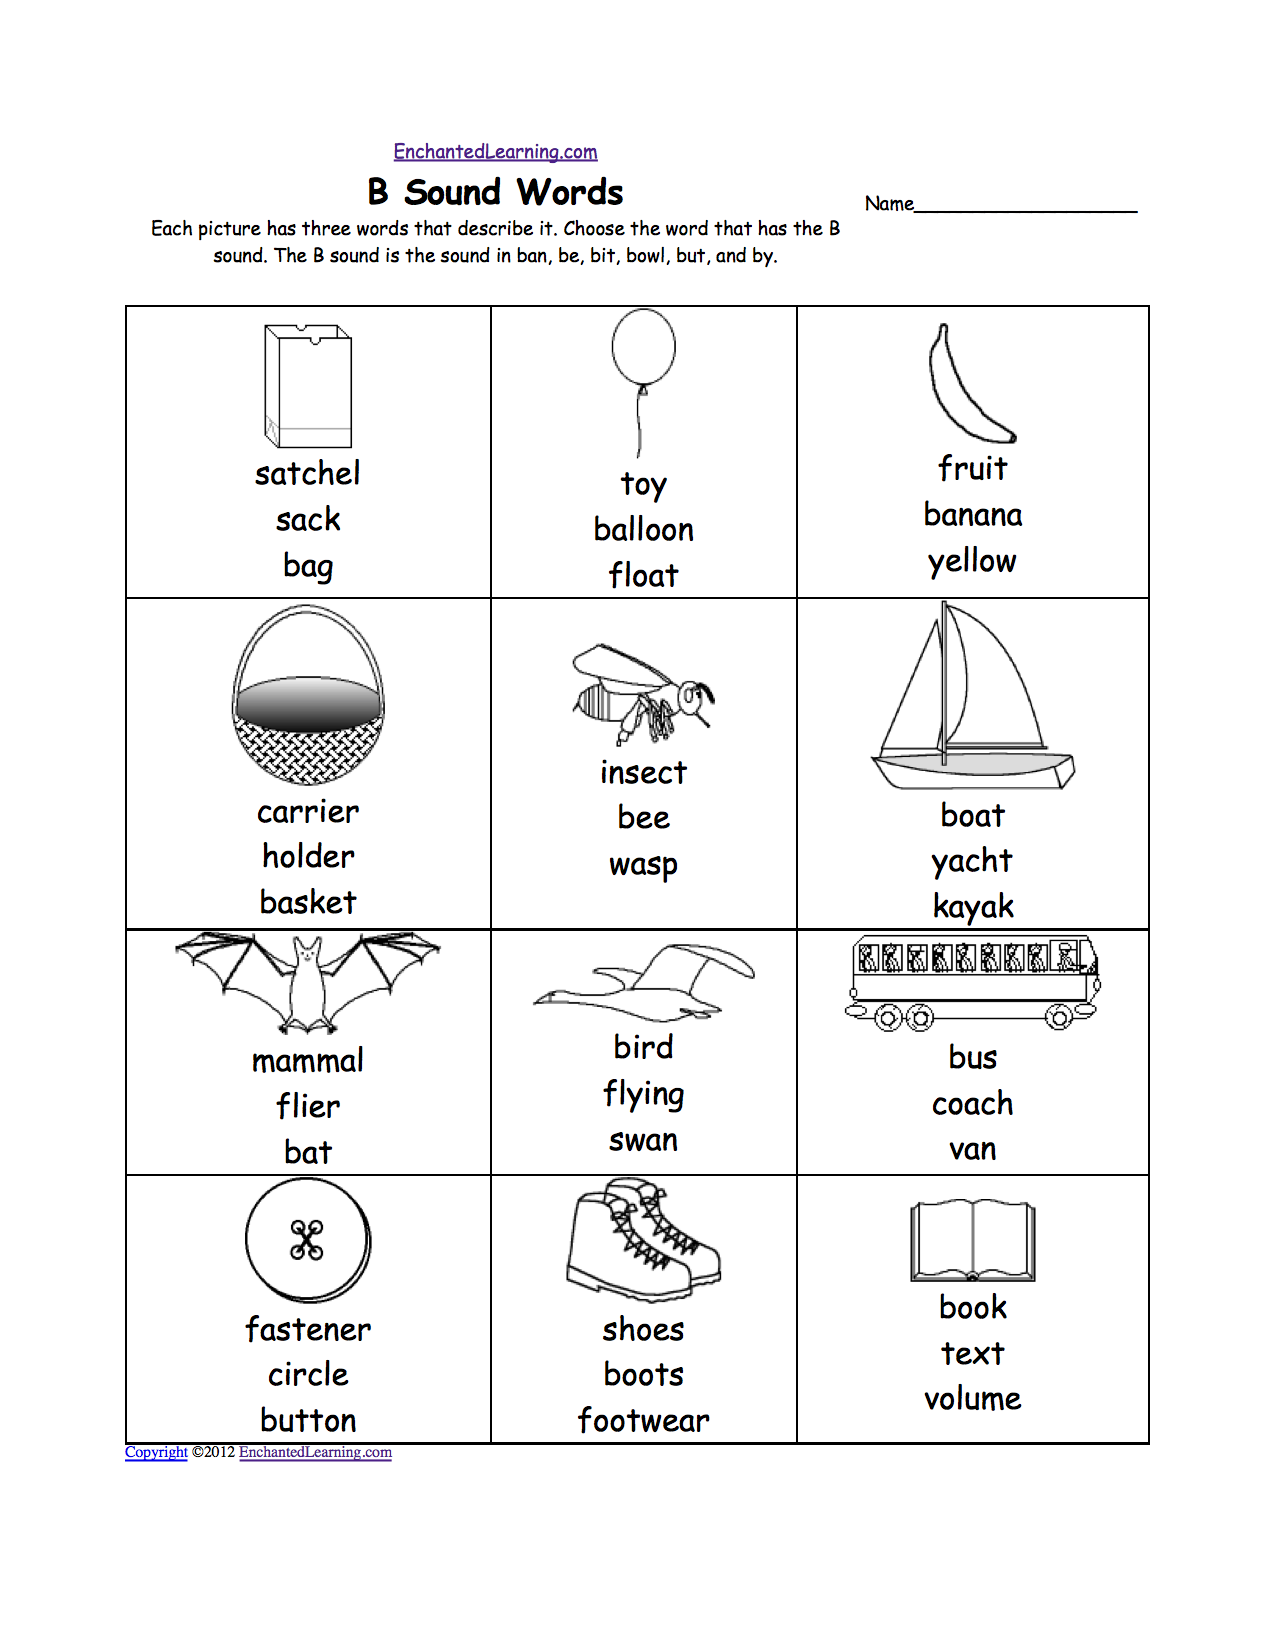 Proatmealus  Prepossessing Phonics Worksheets Multiple Choice Worksheets To Print  With Extraordinary Quotbquot Sound Phonics Worksheet Multiple Choice Each Picture Has Three Words That Describe It Choose The Word That Has A Quotbquot Sound The Quotbquot Sound Is The Sound  With Archaic Math Expressions Worksheets Also Geometry Worksheets For First Grade In Addition The Letter F Worksheets And Brass Family Worksheet As Well As Worksheets On Metaphors Additionally Neat Handwriting Worksheets From Enchantedlearningcom With Proatmealus  Extraordinary Phonics Worksheets Multiple Choice Worksheets To Print  With Archaic Quotbquot Sound Phonics Worksheet Multiple Choice Each Picture Has Three Words That Describe It Choose The Word That Has A Quotbquot Sound The Quotbquot Sound Is The Sound  And Prepossessing Math Expressions Worksheets Also Geometry Worksheets For First Grade In Addition The Letter F Worksheets From Enchantedlearningcom